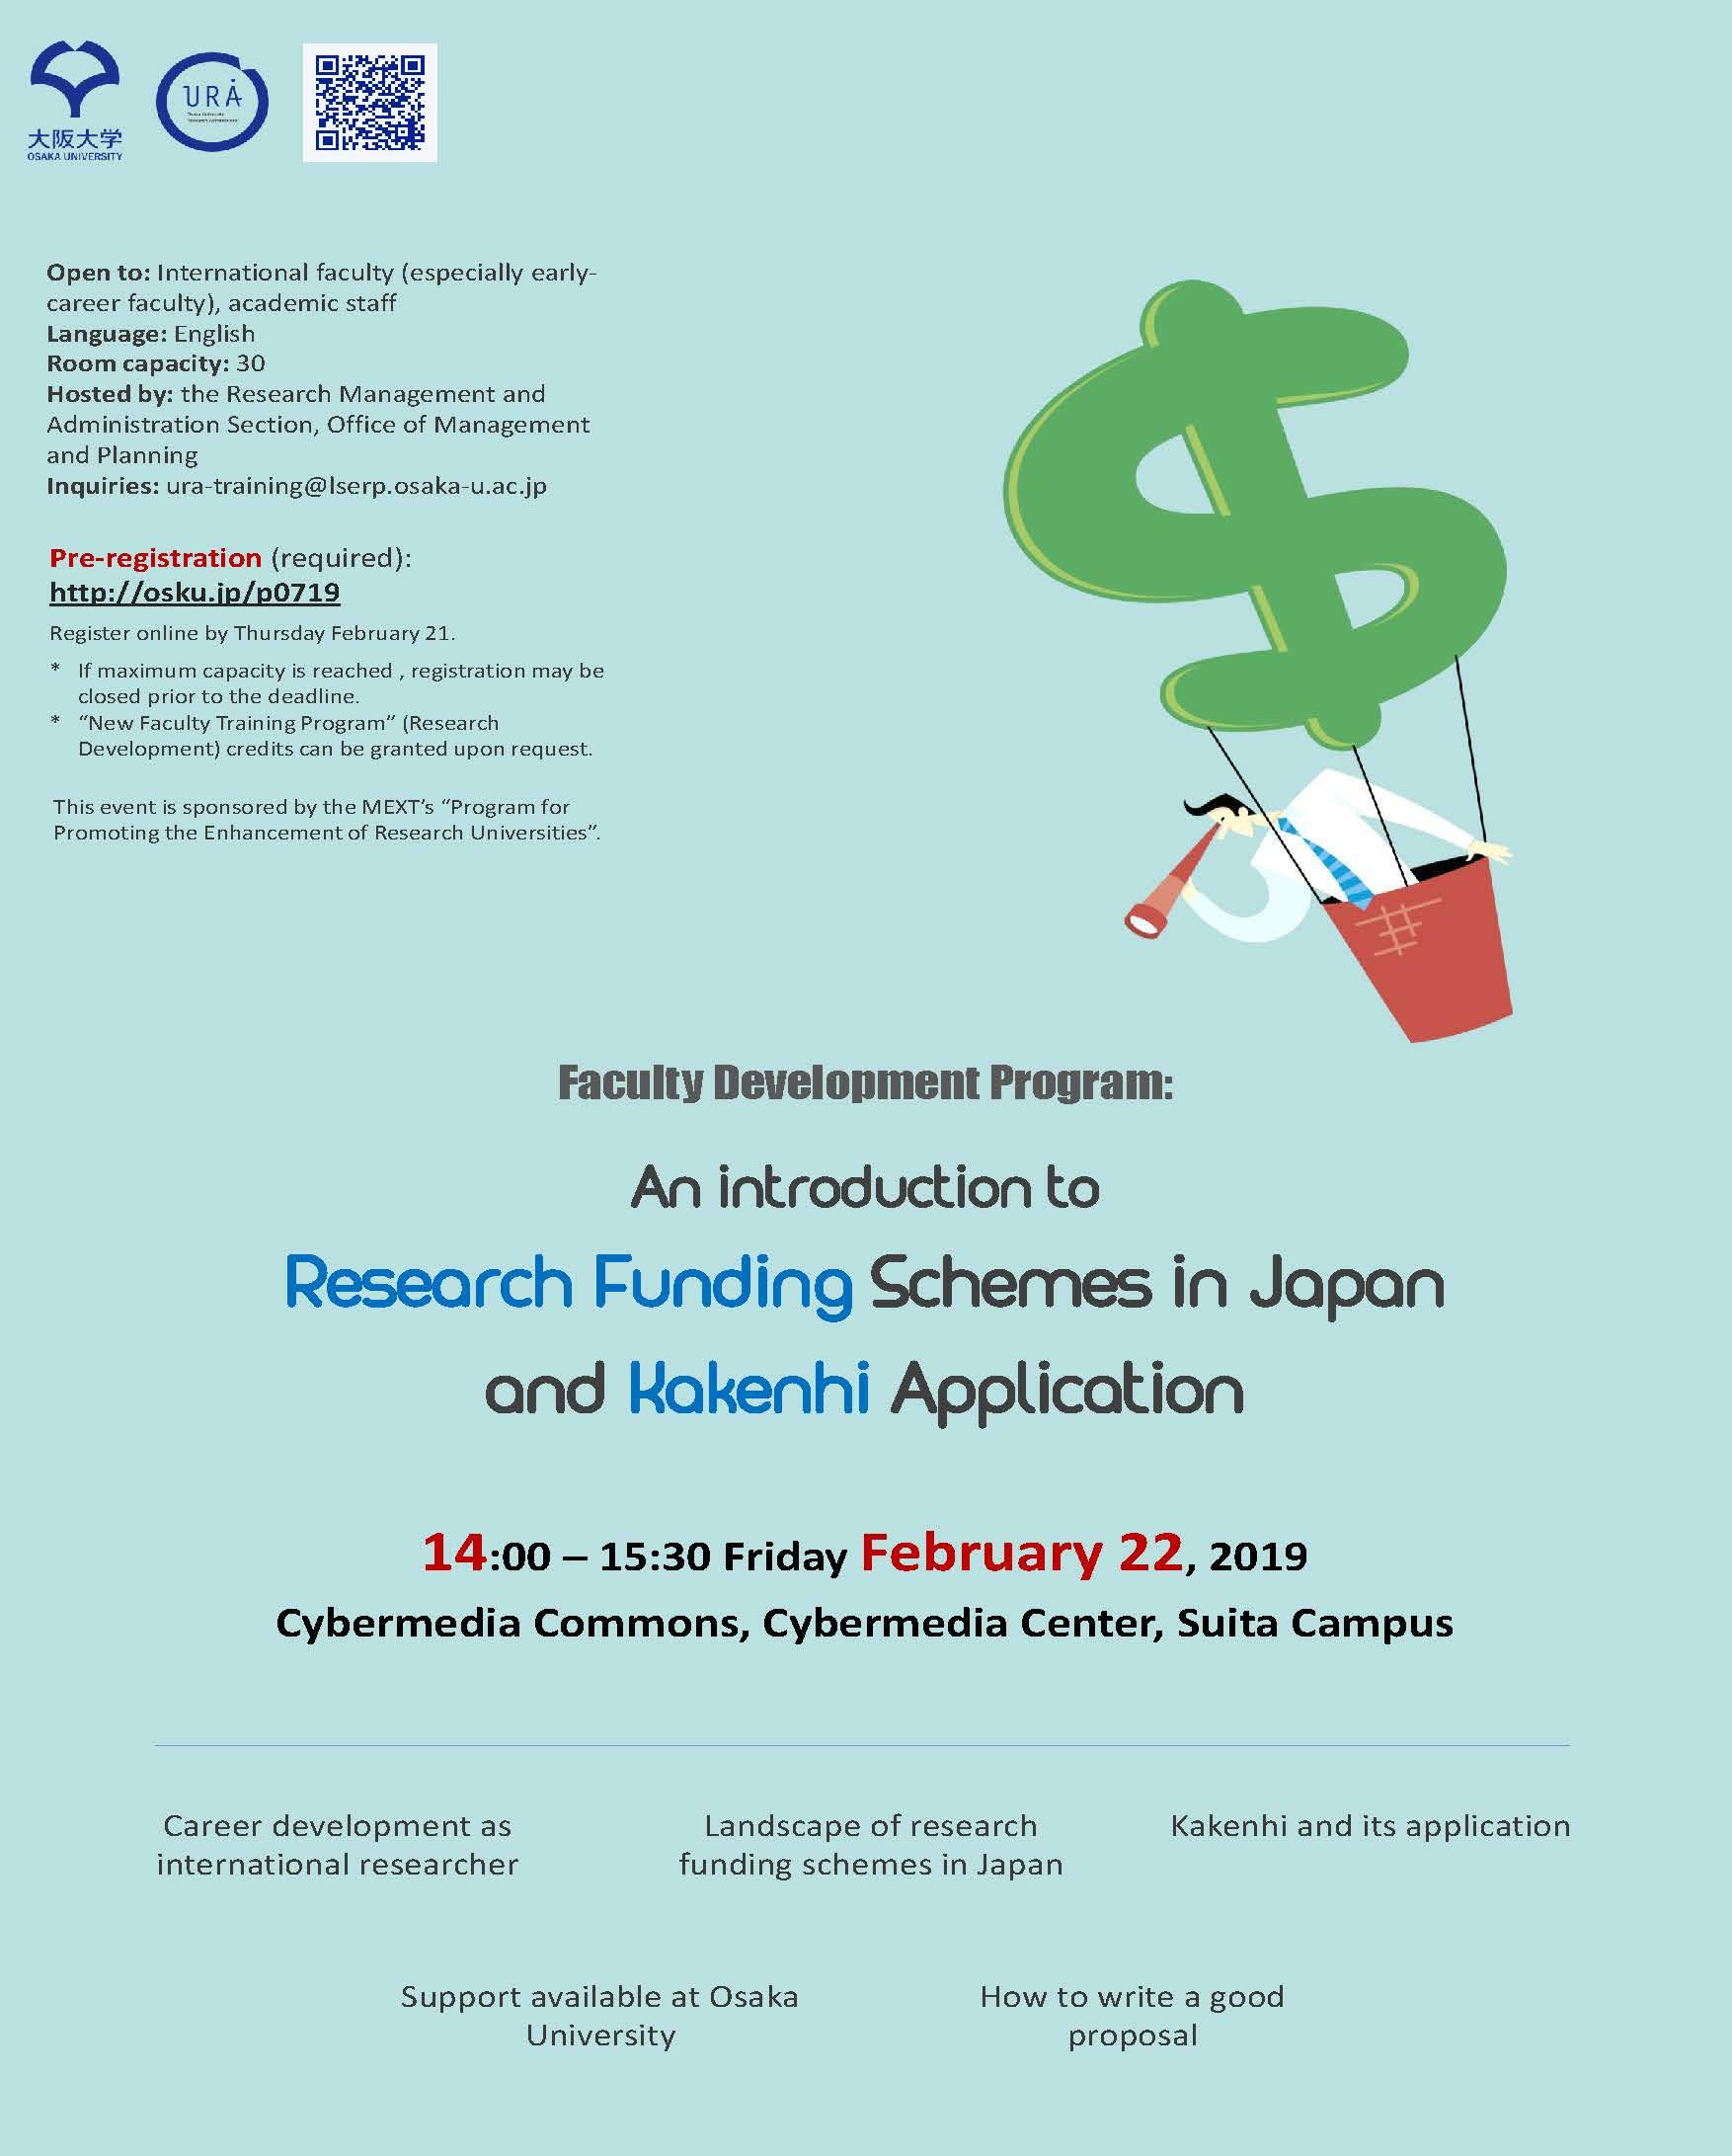 Flyer_Research funding in JP and Kakenhi Application.jpg